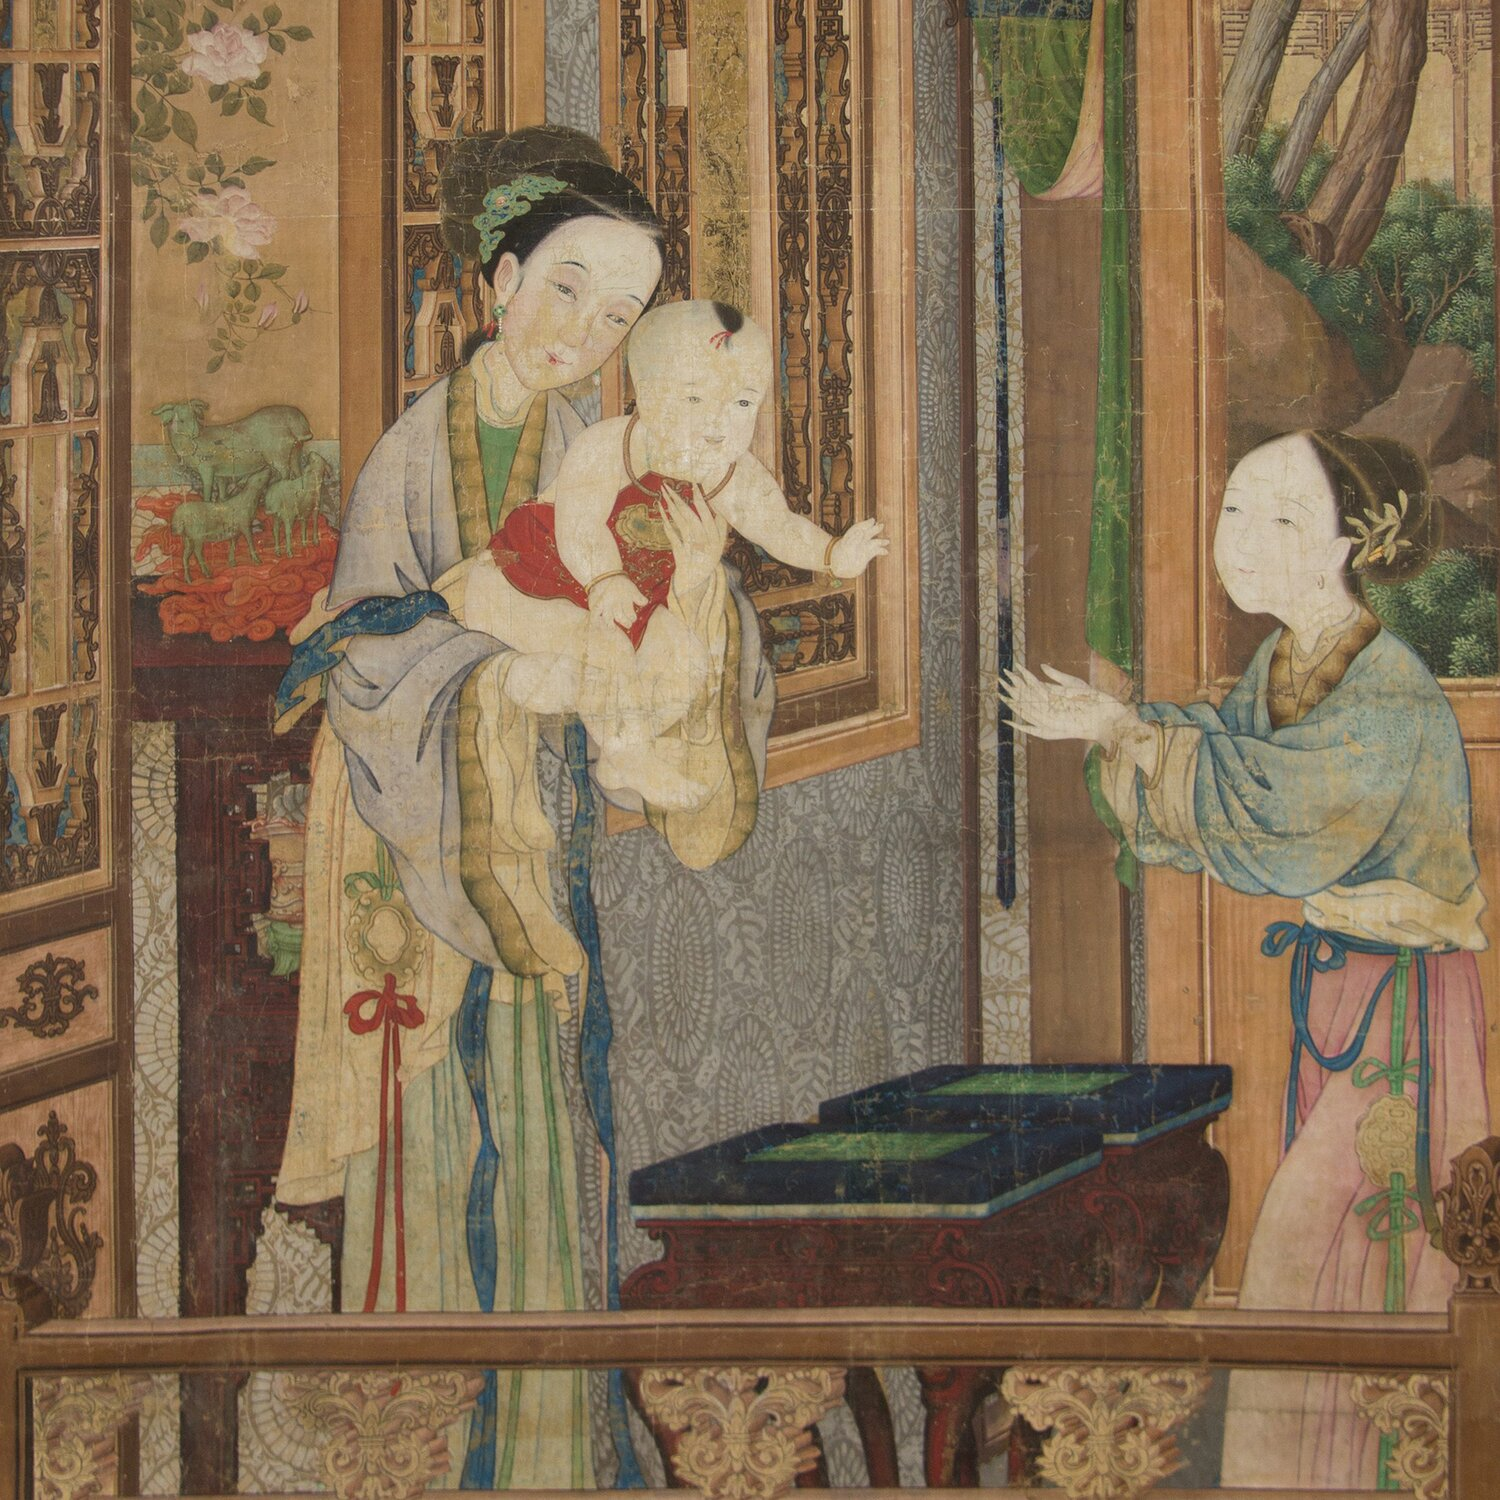 How Chinese philosophy can help you parent | Psyche